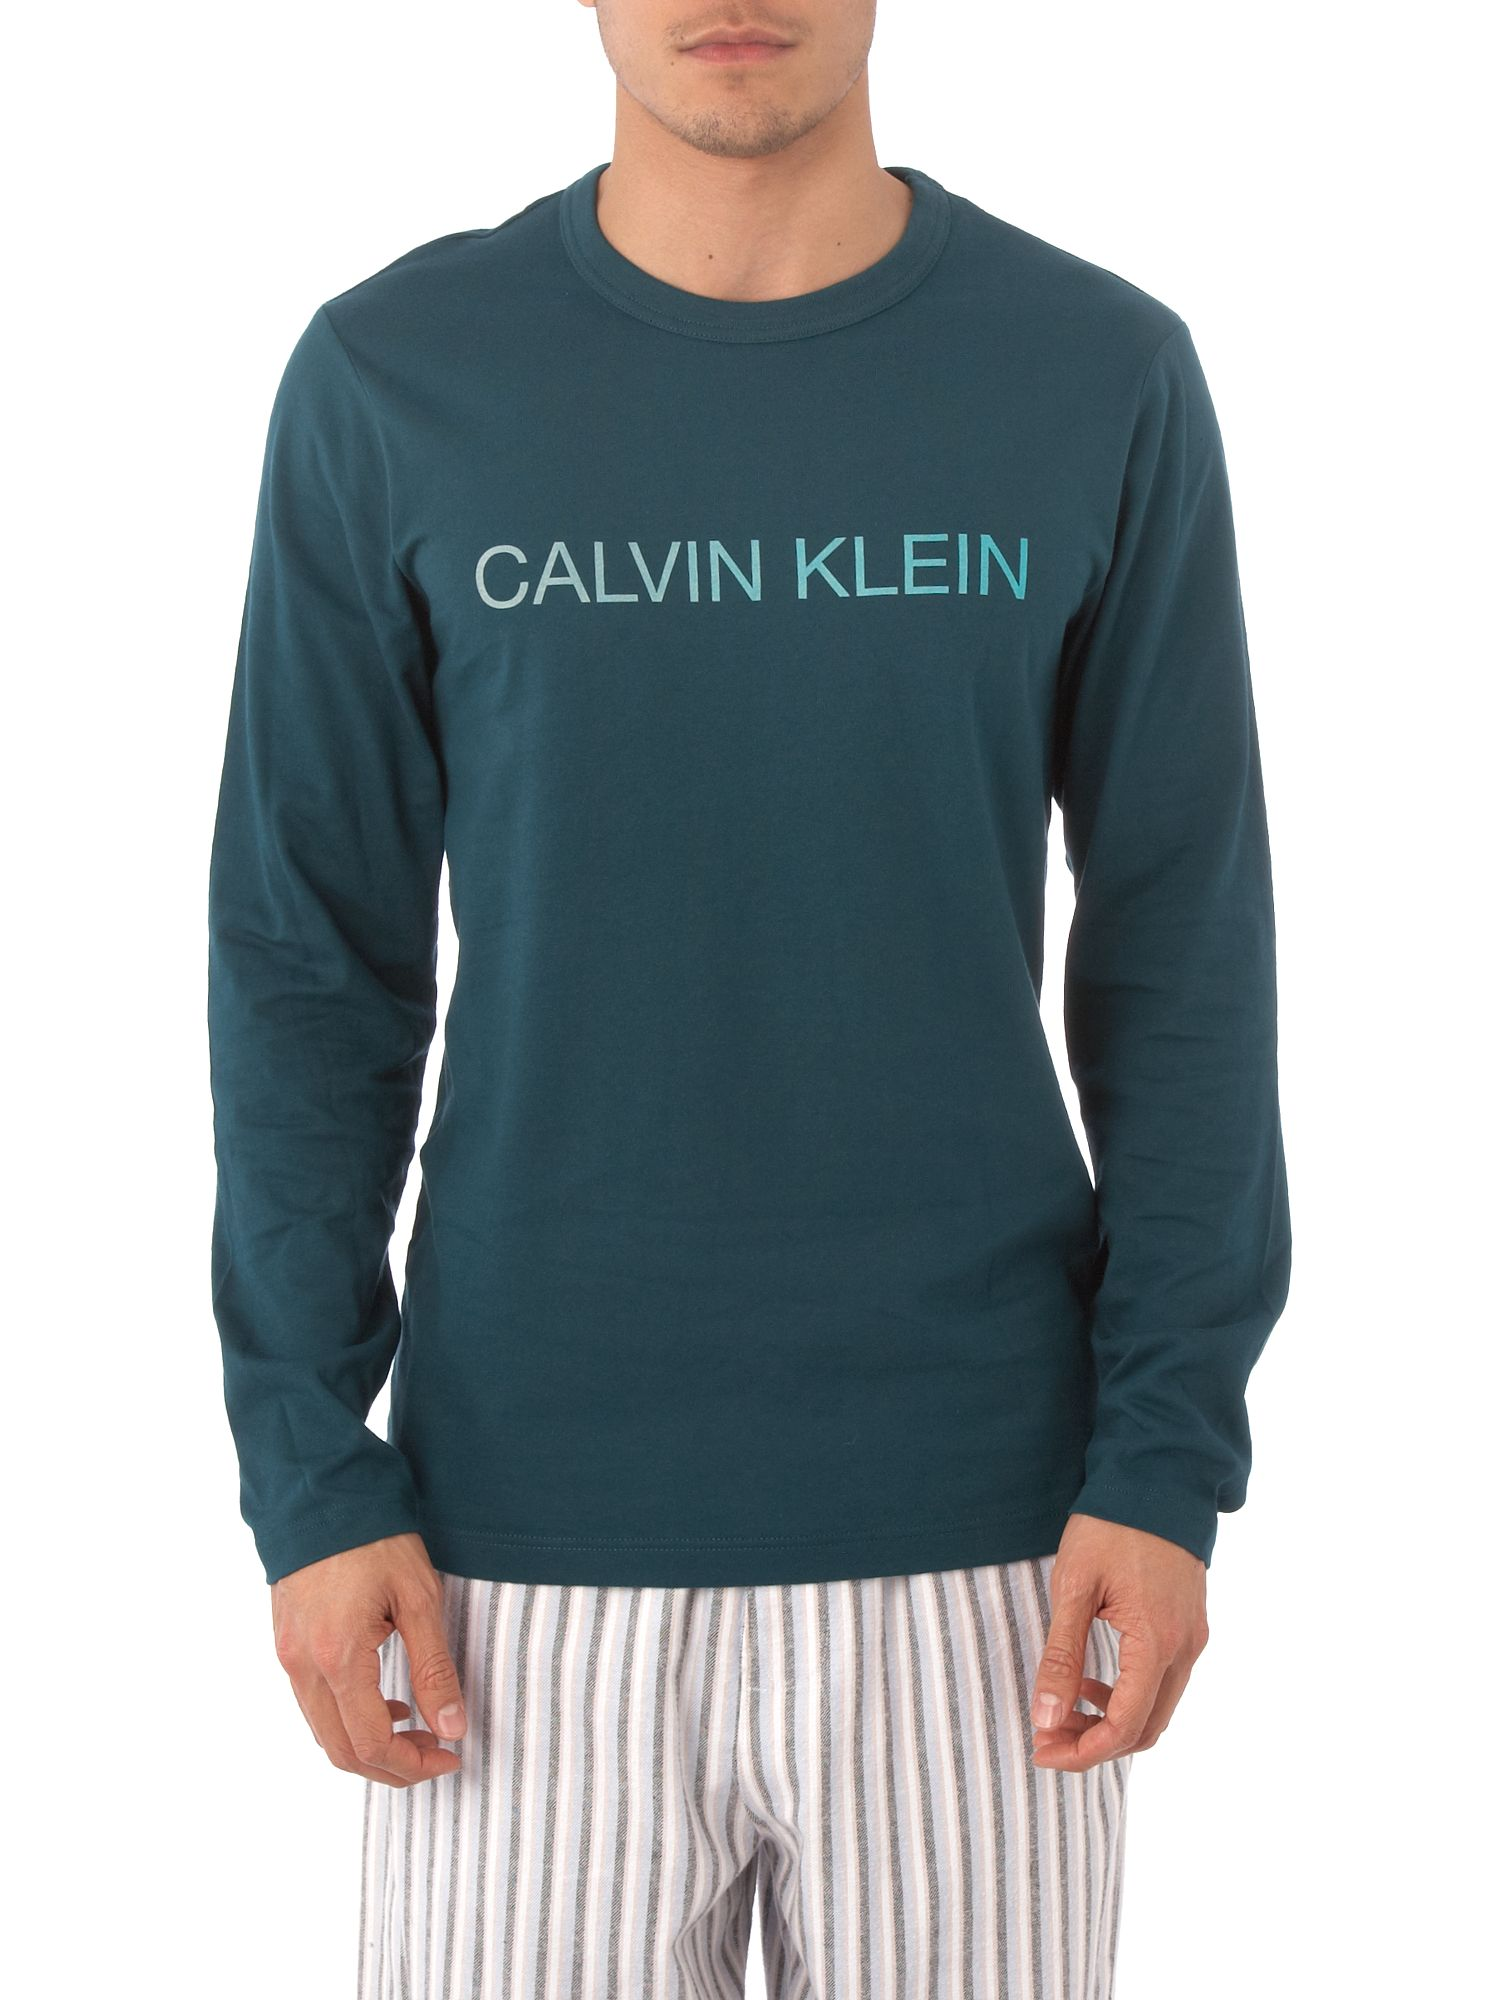 Calvin Klein Long sleeved crew T-shirt - Aqua M,L product image